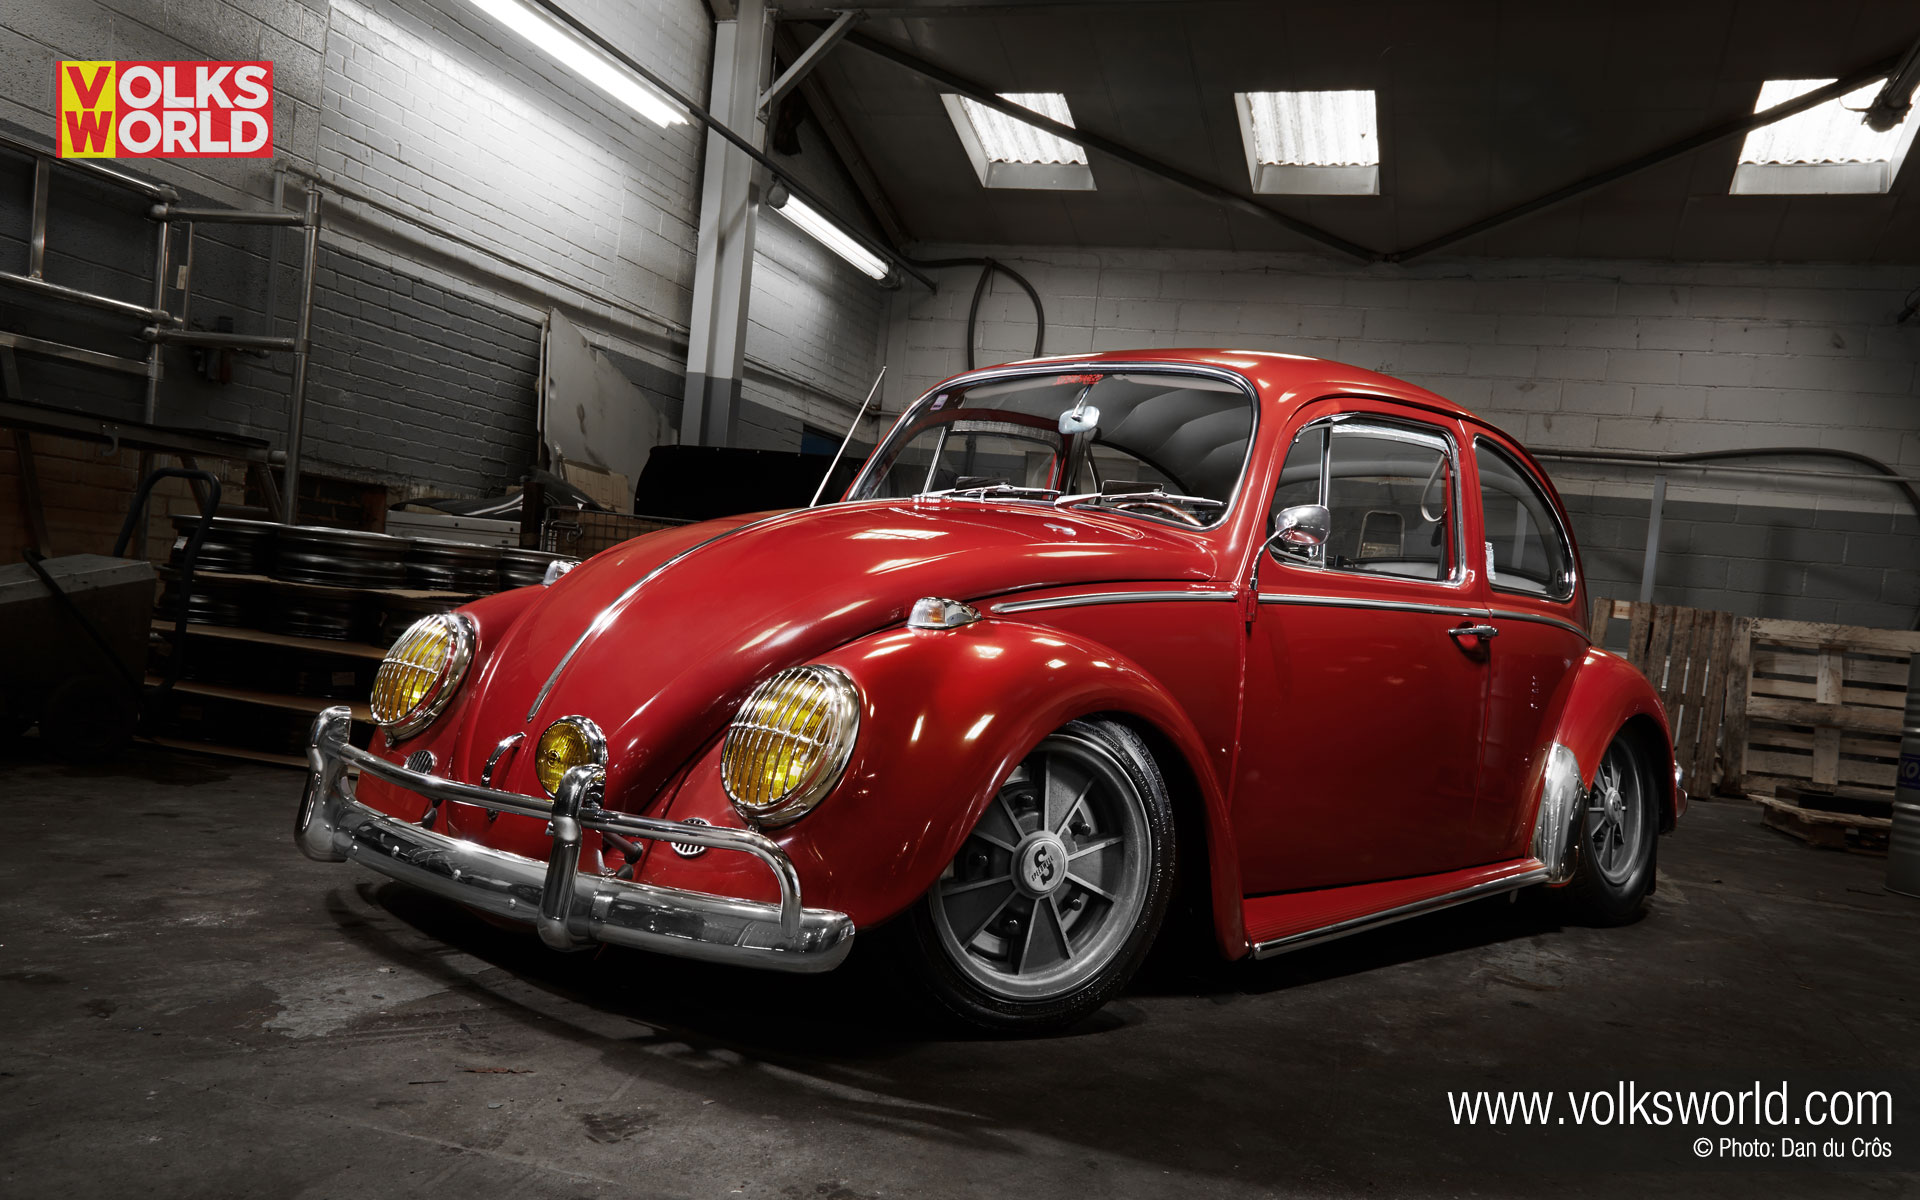 1965 VW Beetle   Best of 2014   VolksWorld 1920x1200